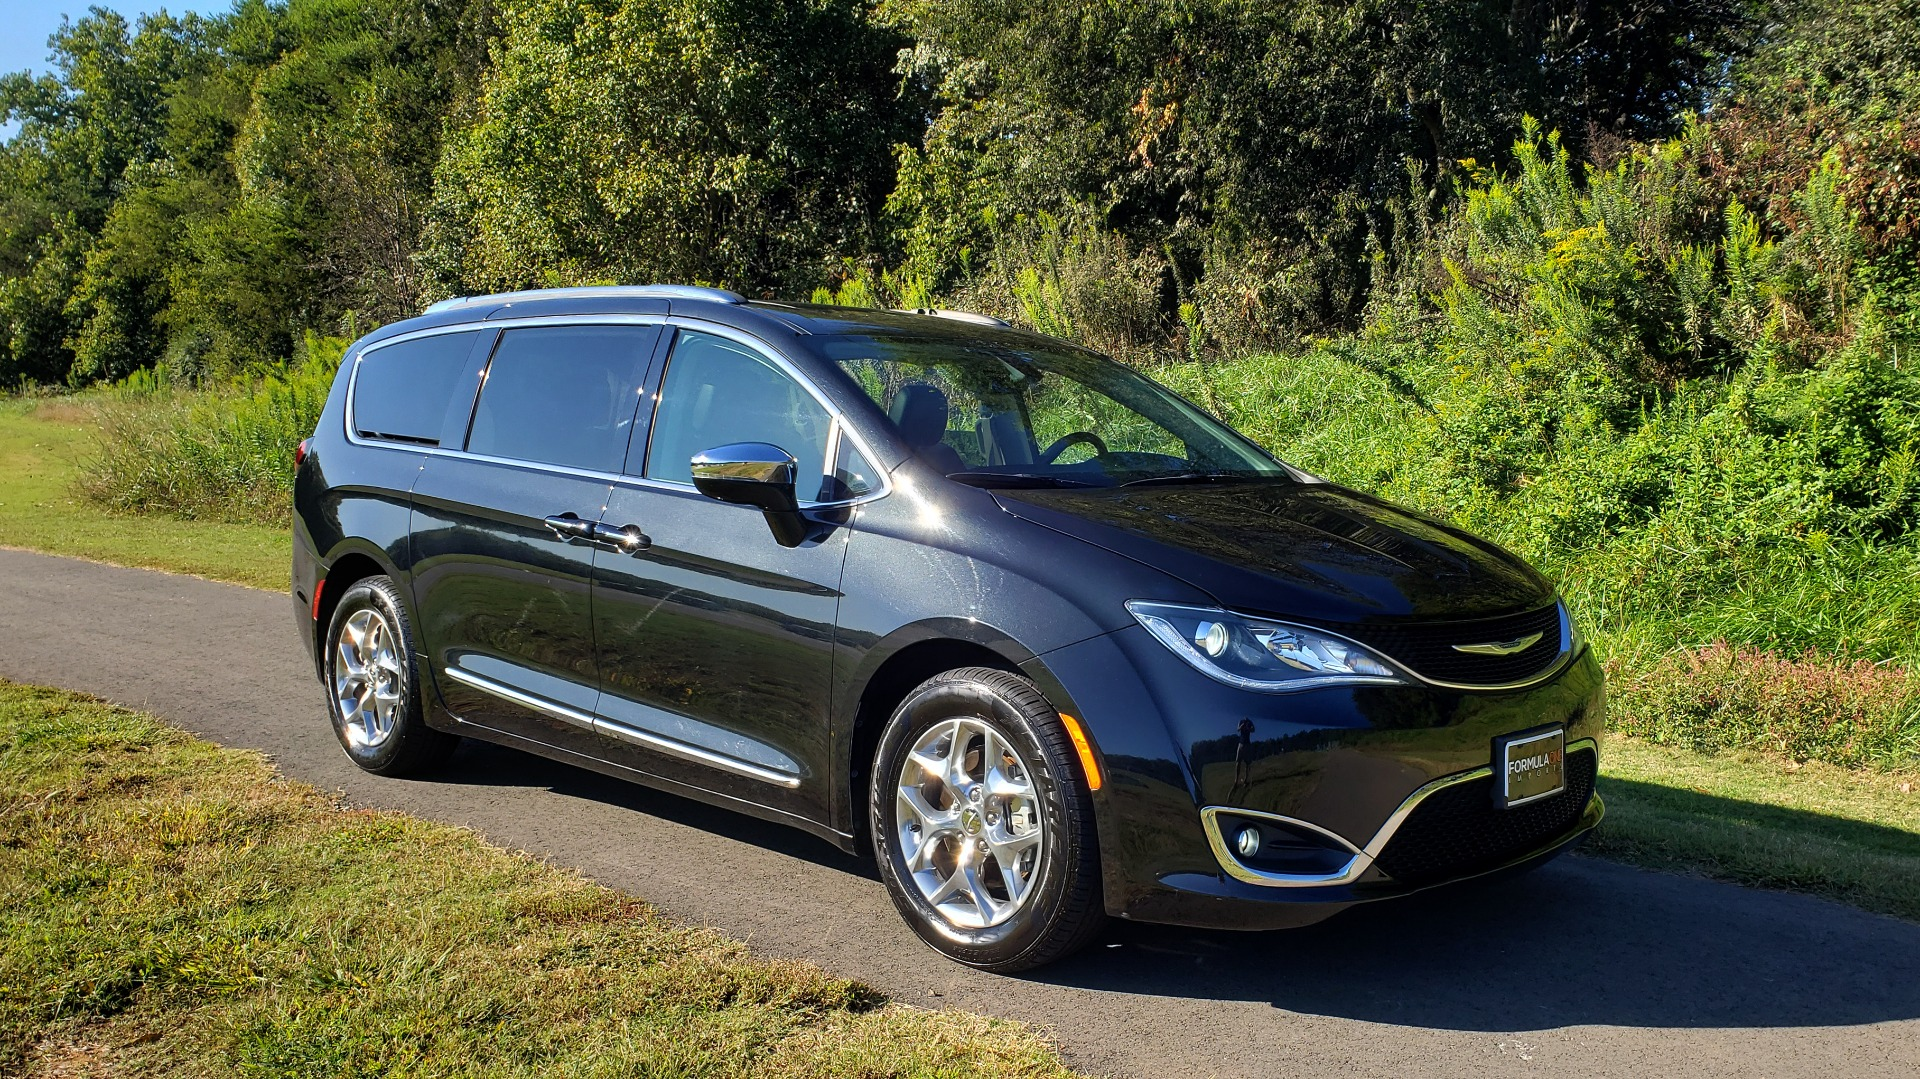 Used 2018 Chrysler PACIFICA LIMITED / 3.6L V6 / NAV / PANO-ROOF / 3-ROWS / REARVIEW for sale Sold at Formula Imports in Charlotte NC 28227 2